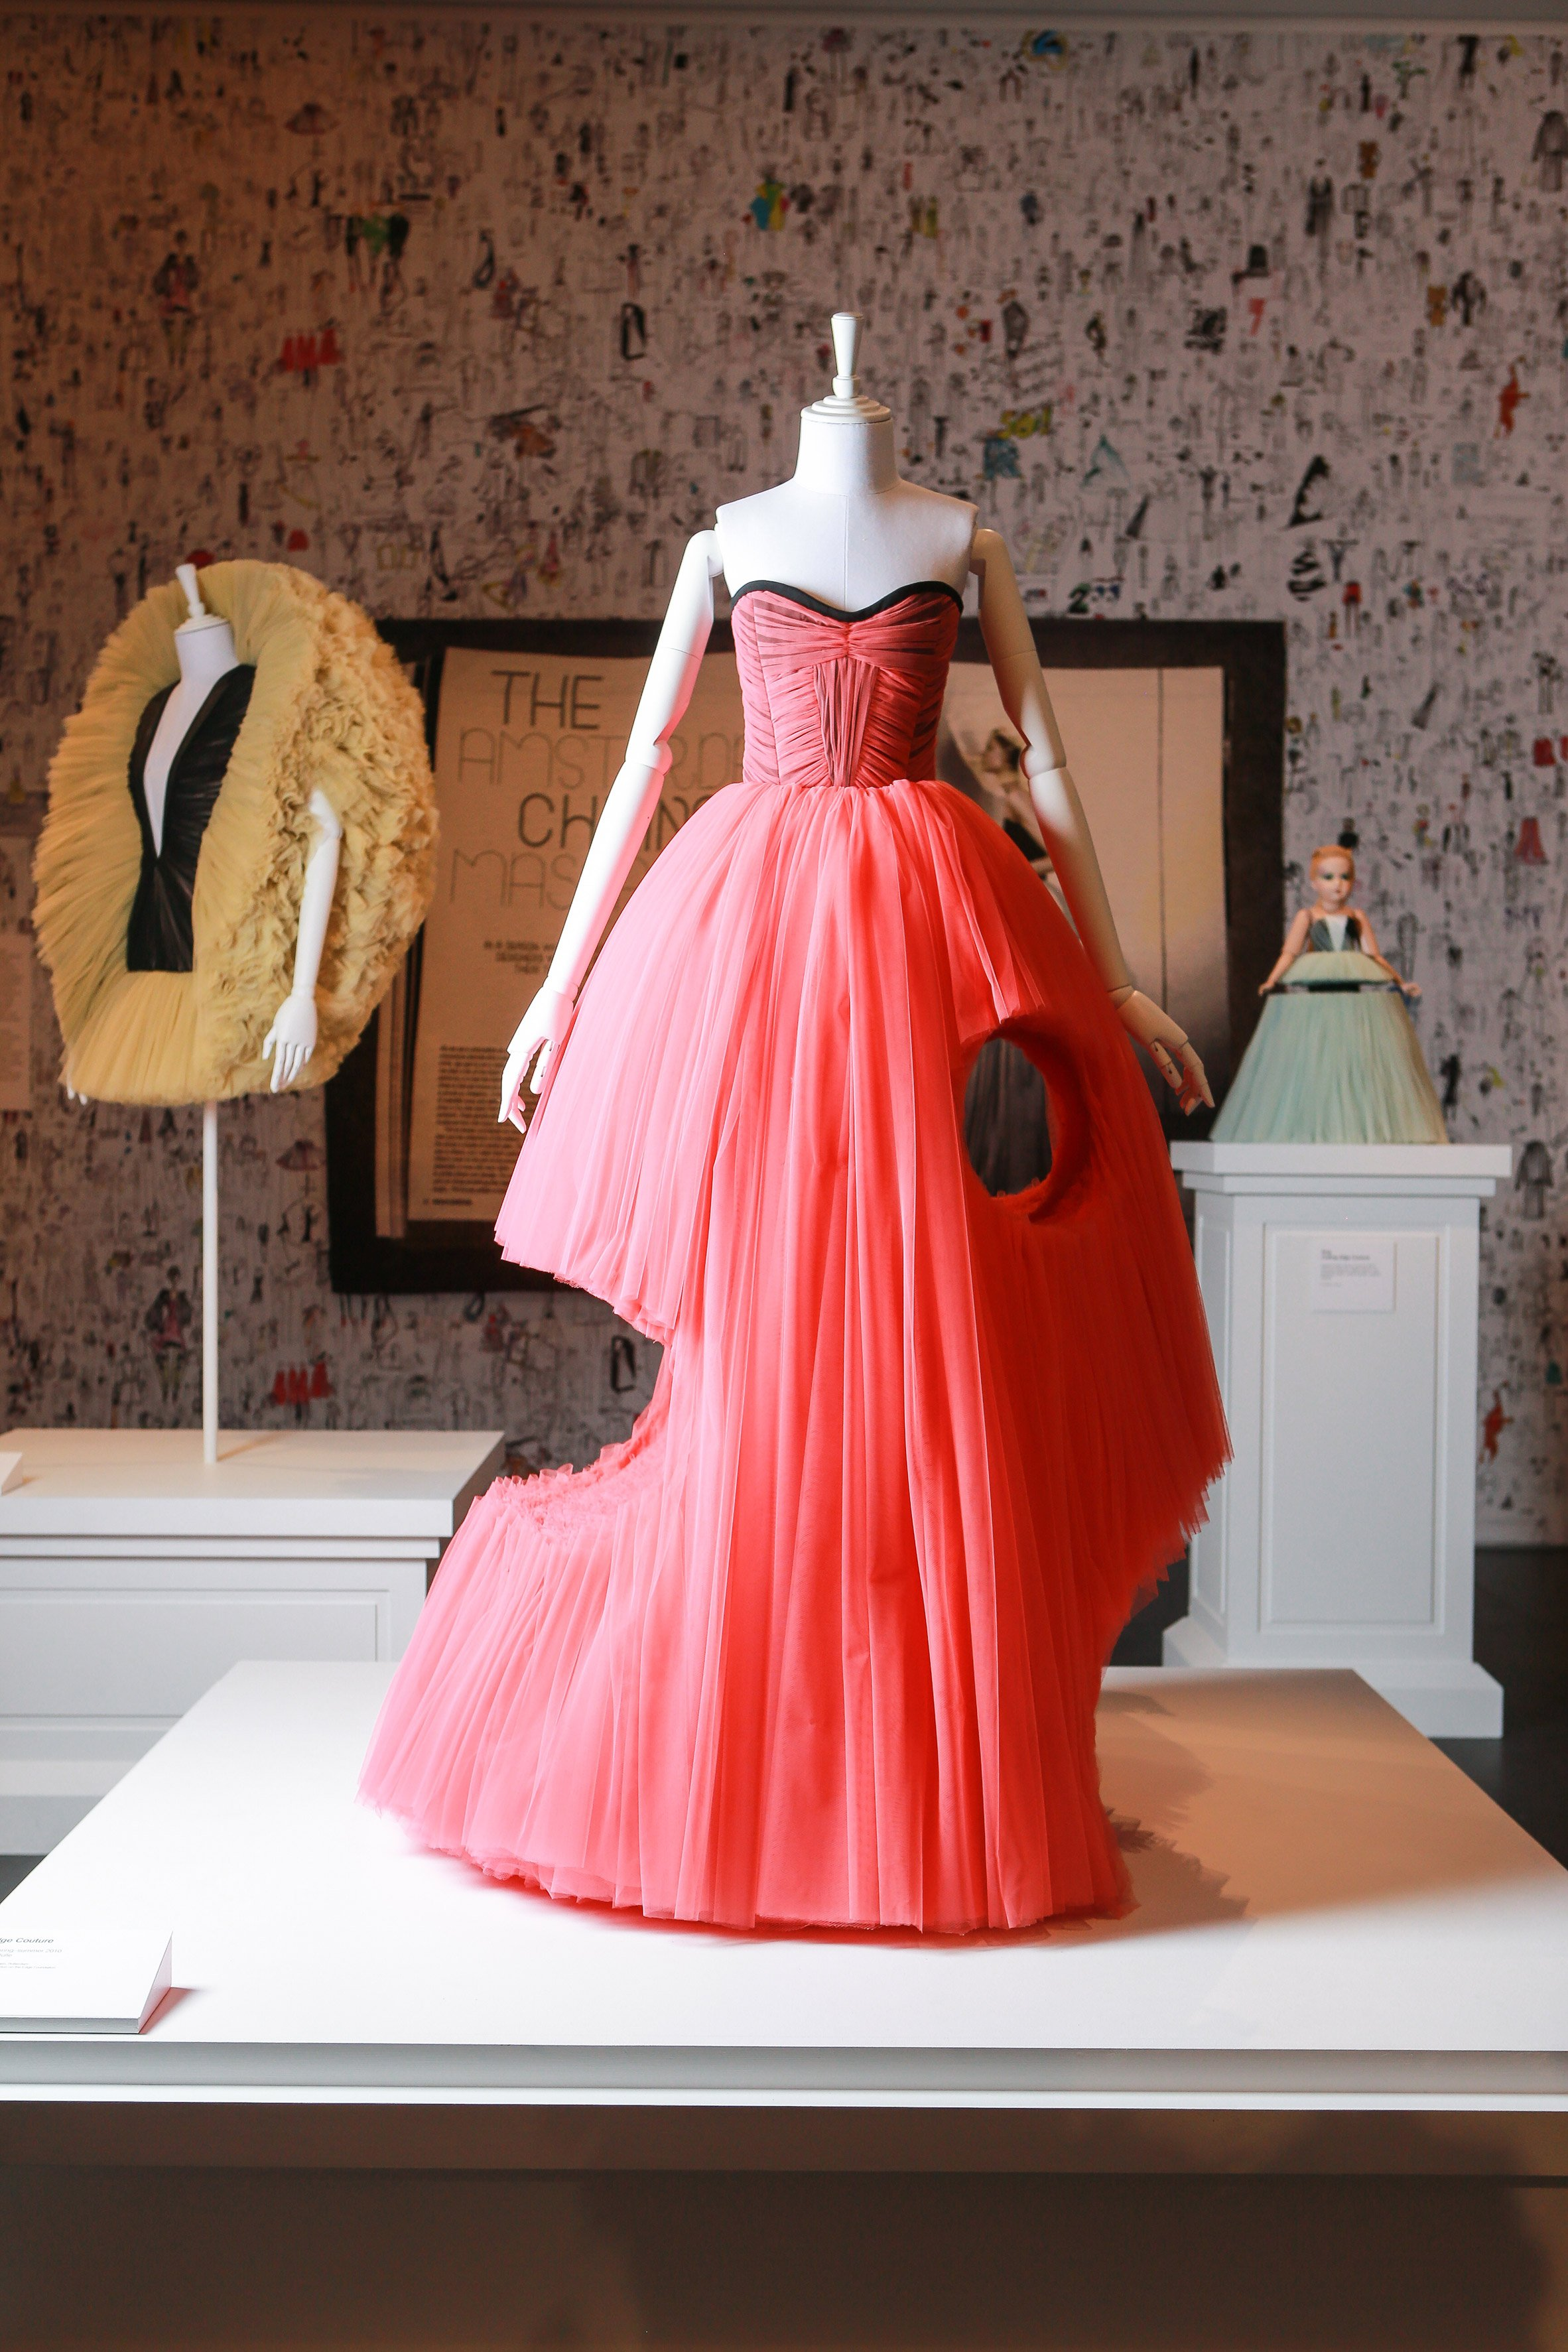 Viktor & Rolf shows two decades of work in first Australian exhibition